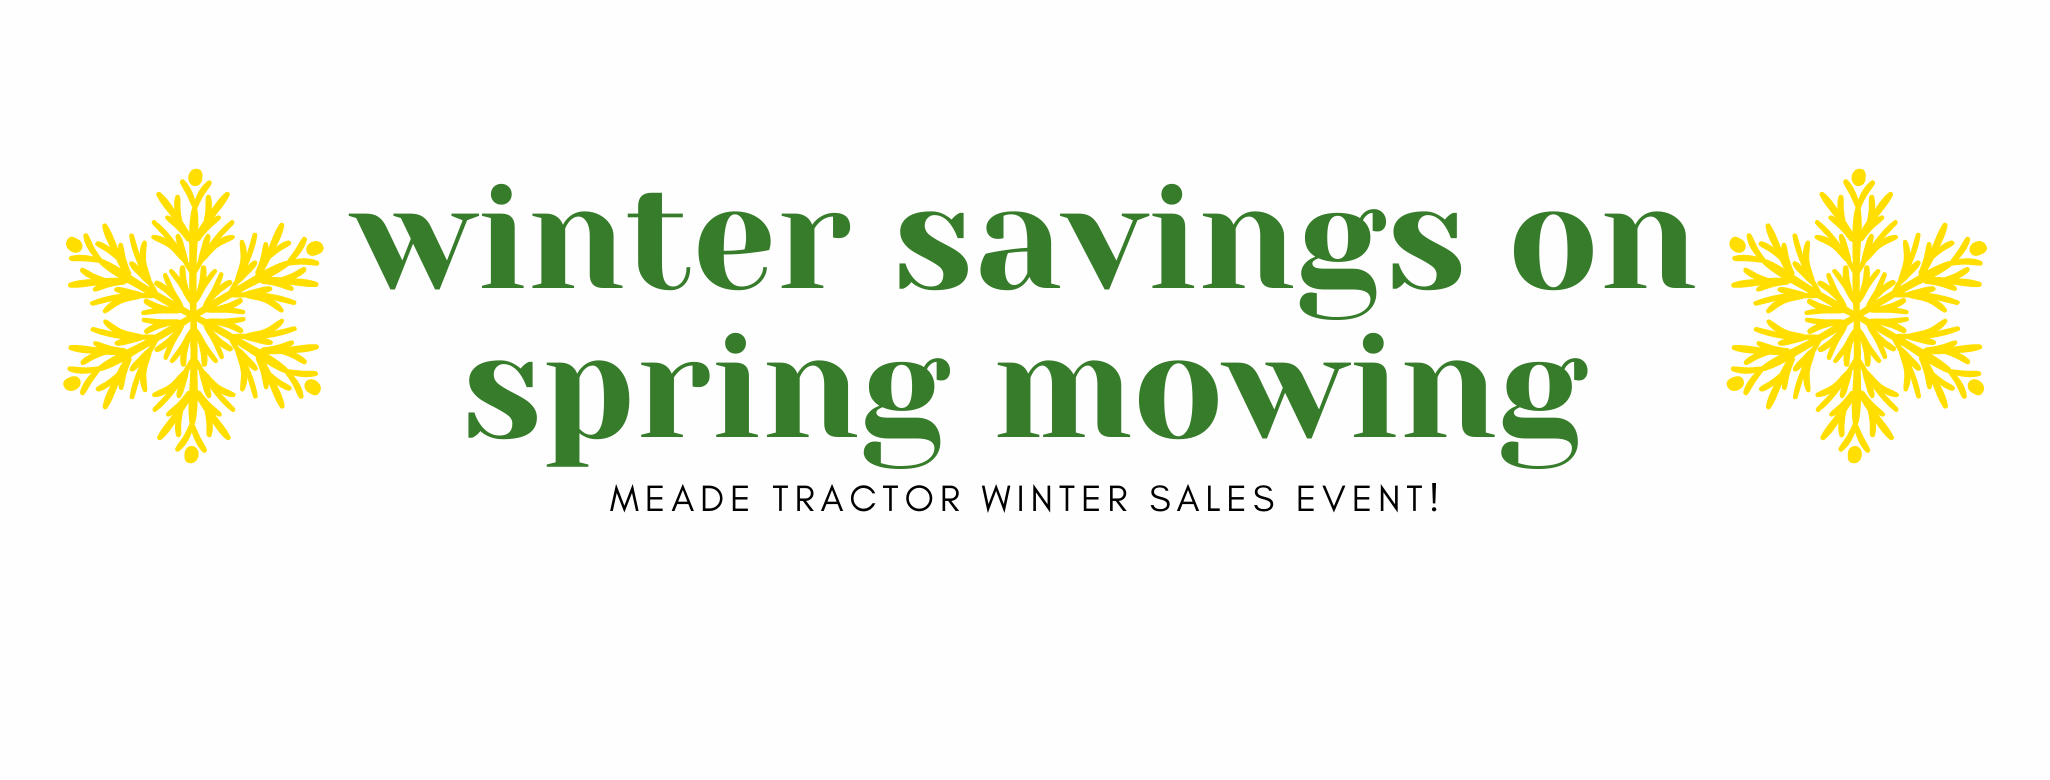 Winter Sales Event  happening now at Meade Tractor